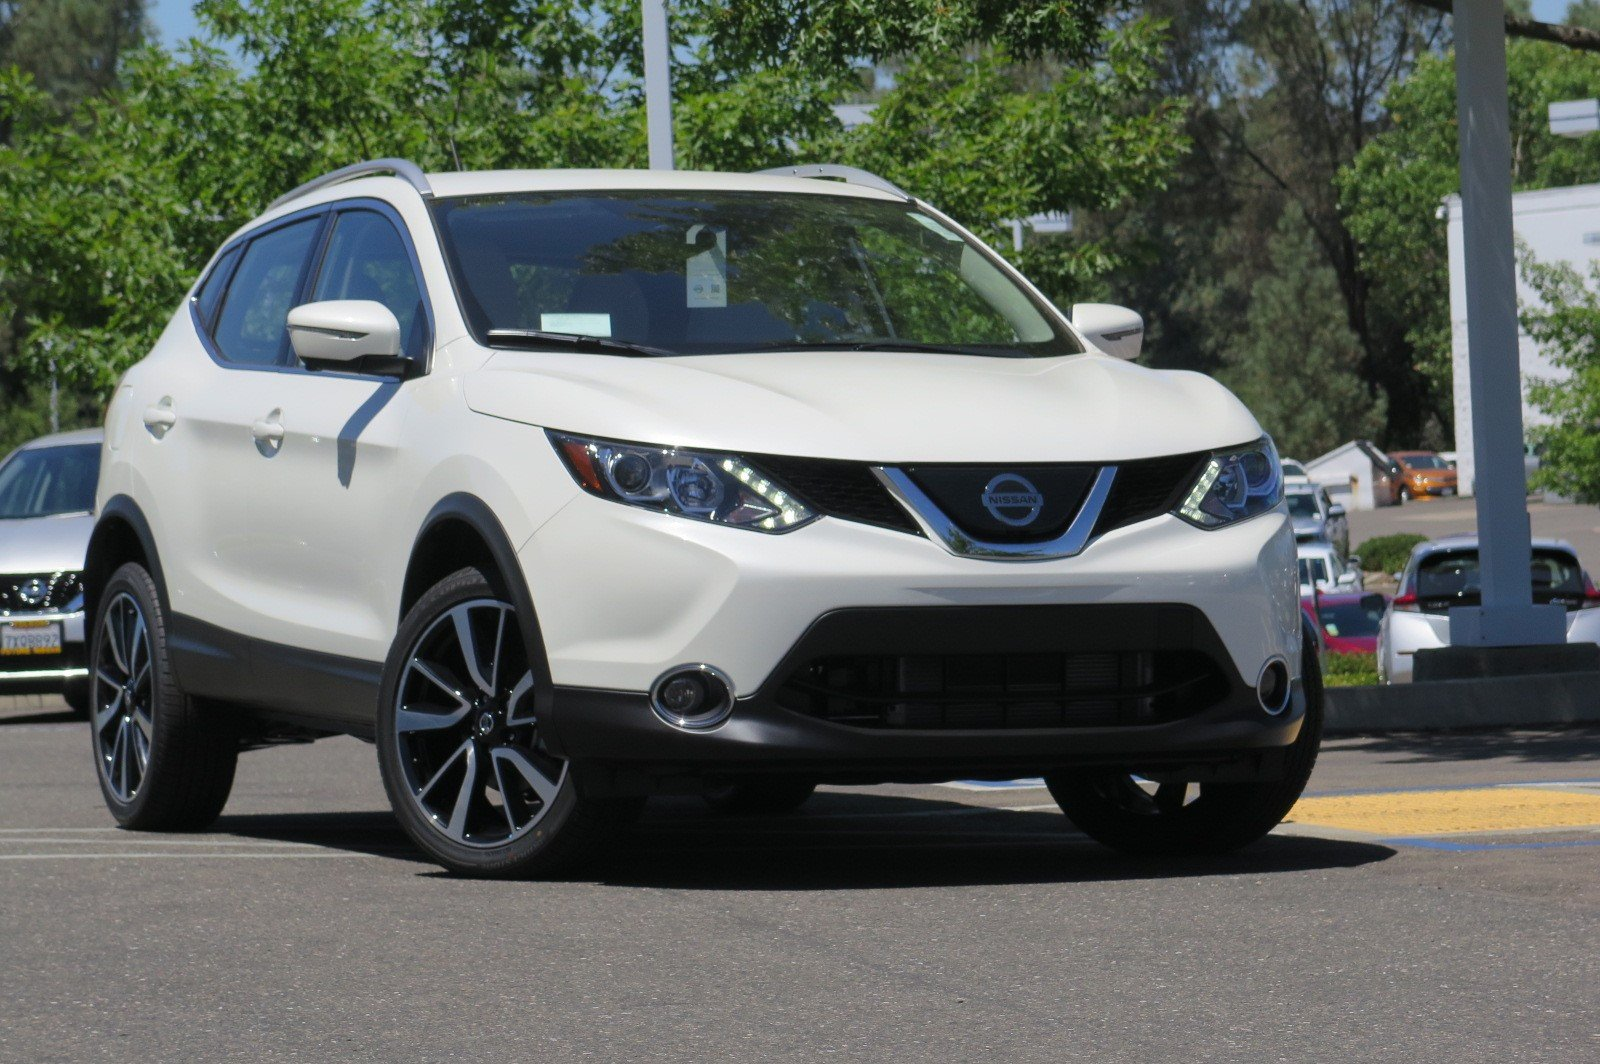 Nissan Rogue Owners Manual: Doors